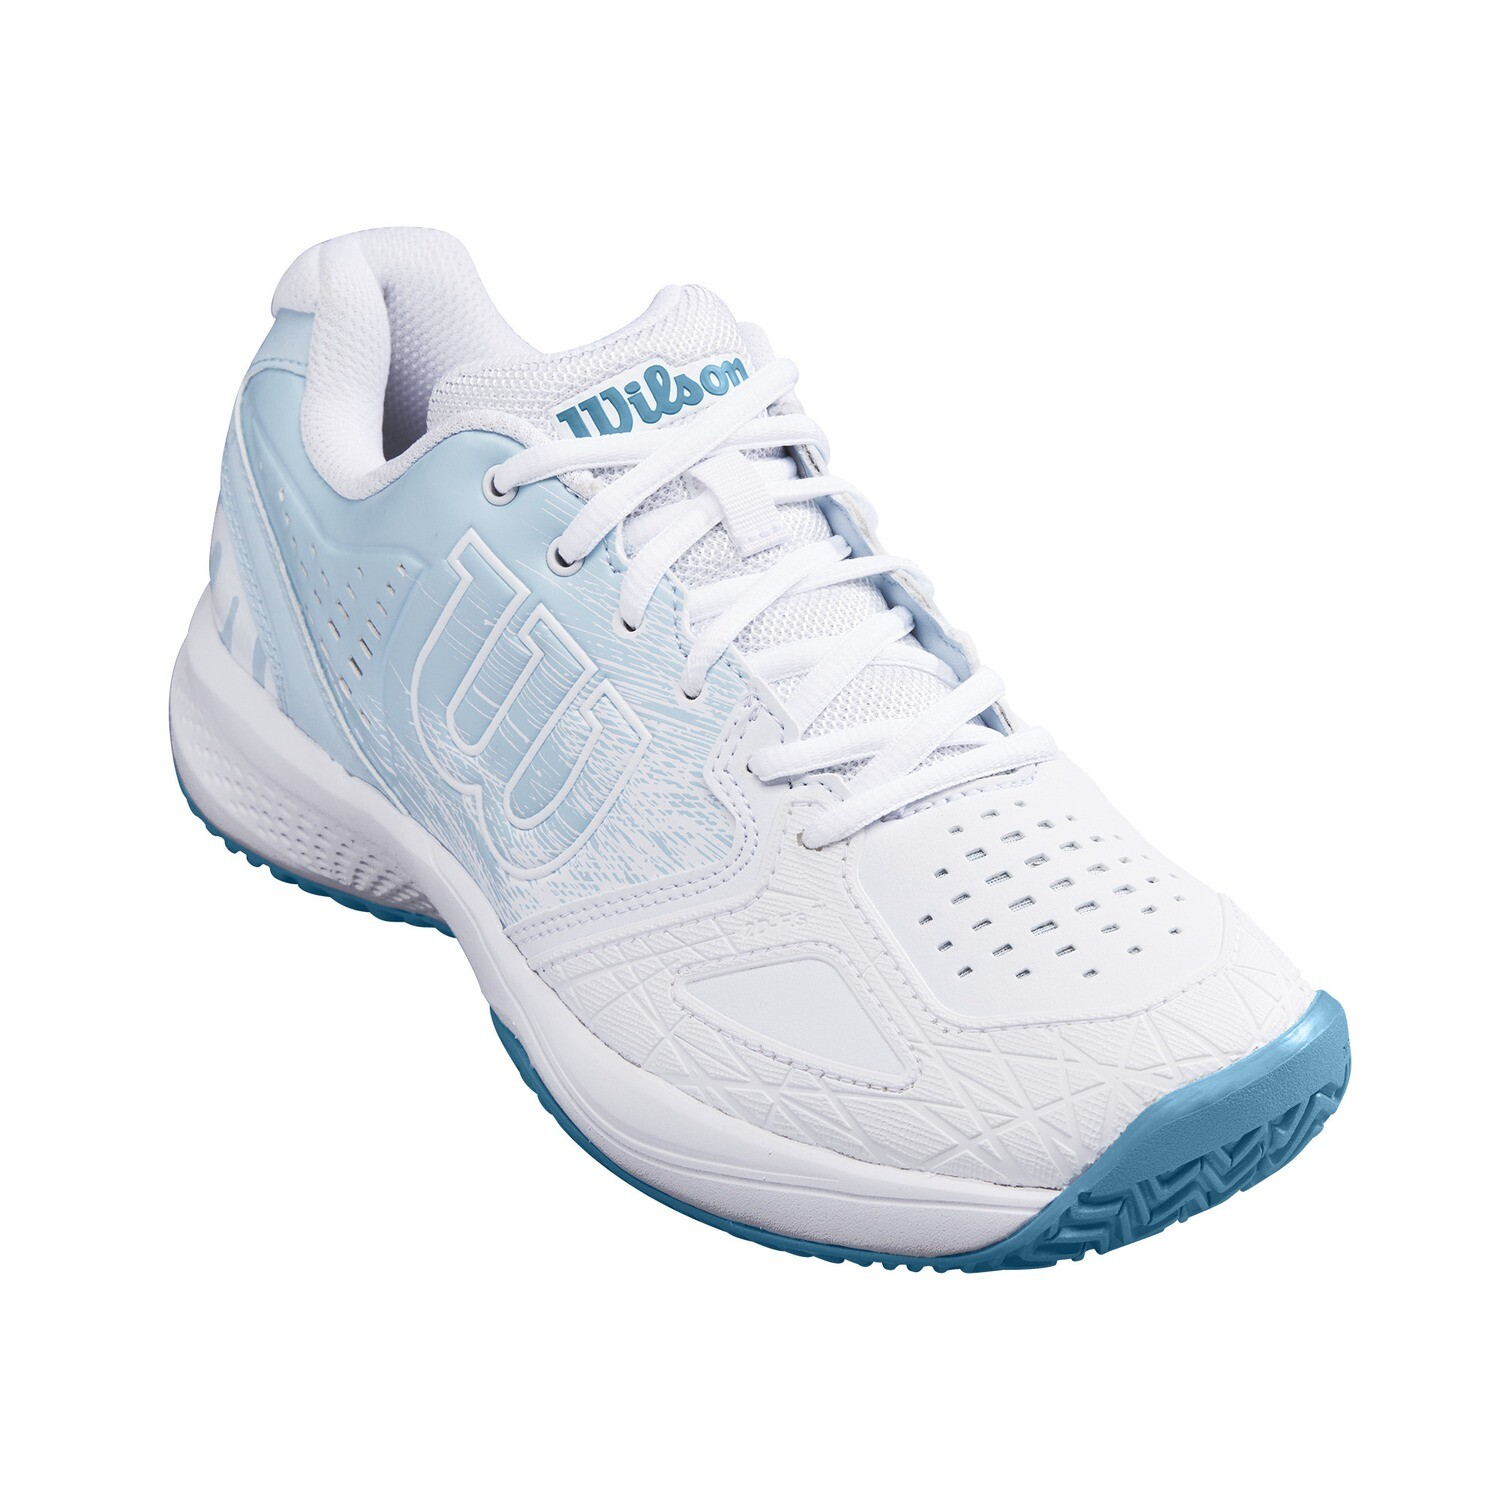 Wilson Kaos Comp 2.0 Women's Tennis Shoes - White/Niagara/Omphalodes